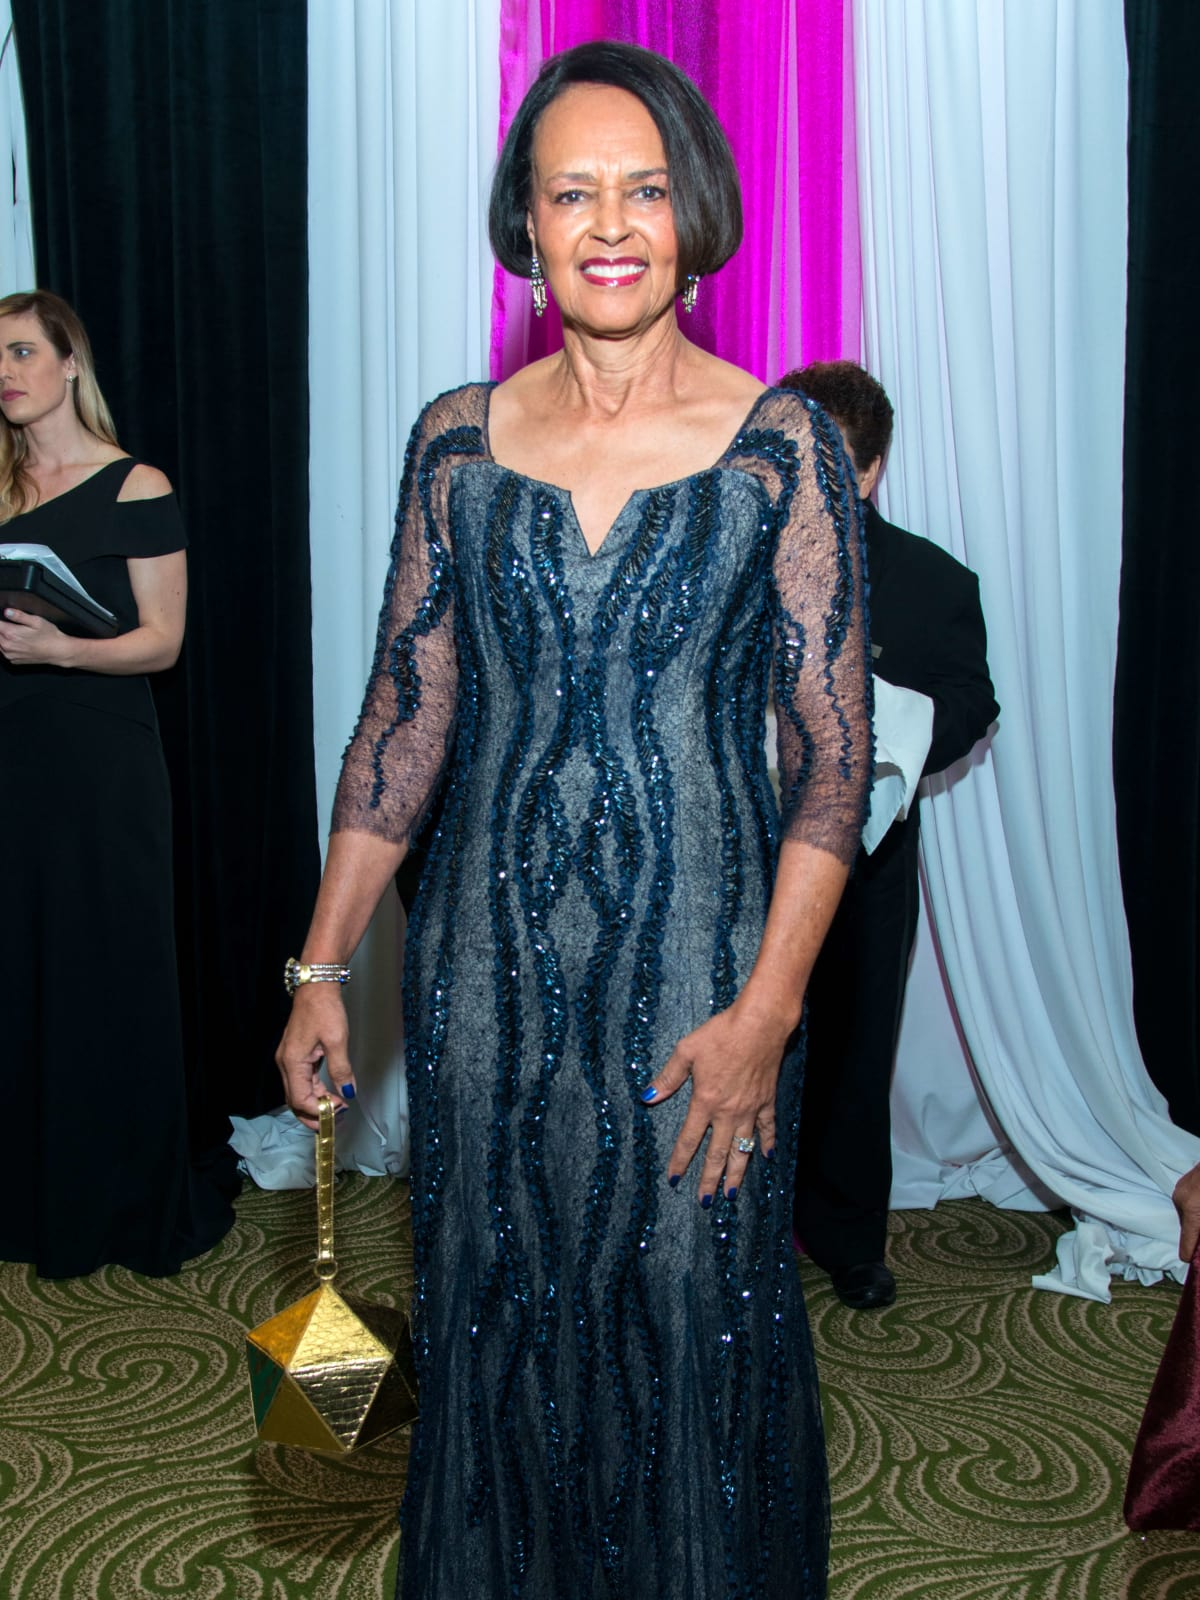 Houston, Women of Distinction fashionable gowns, Feb 2017, Gayla Gardner